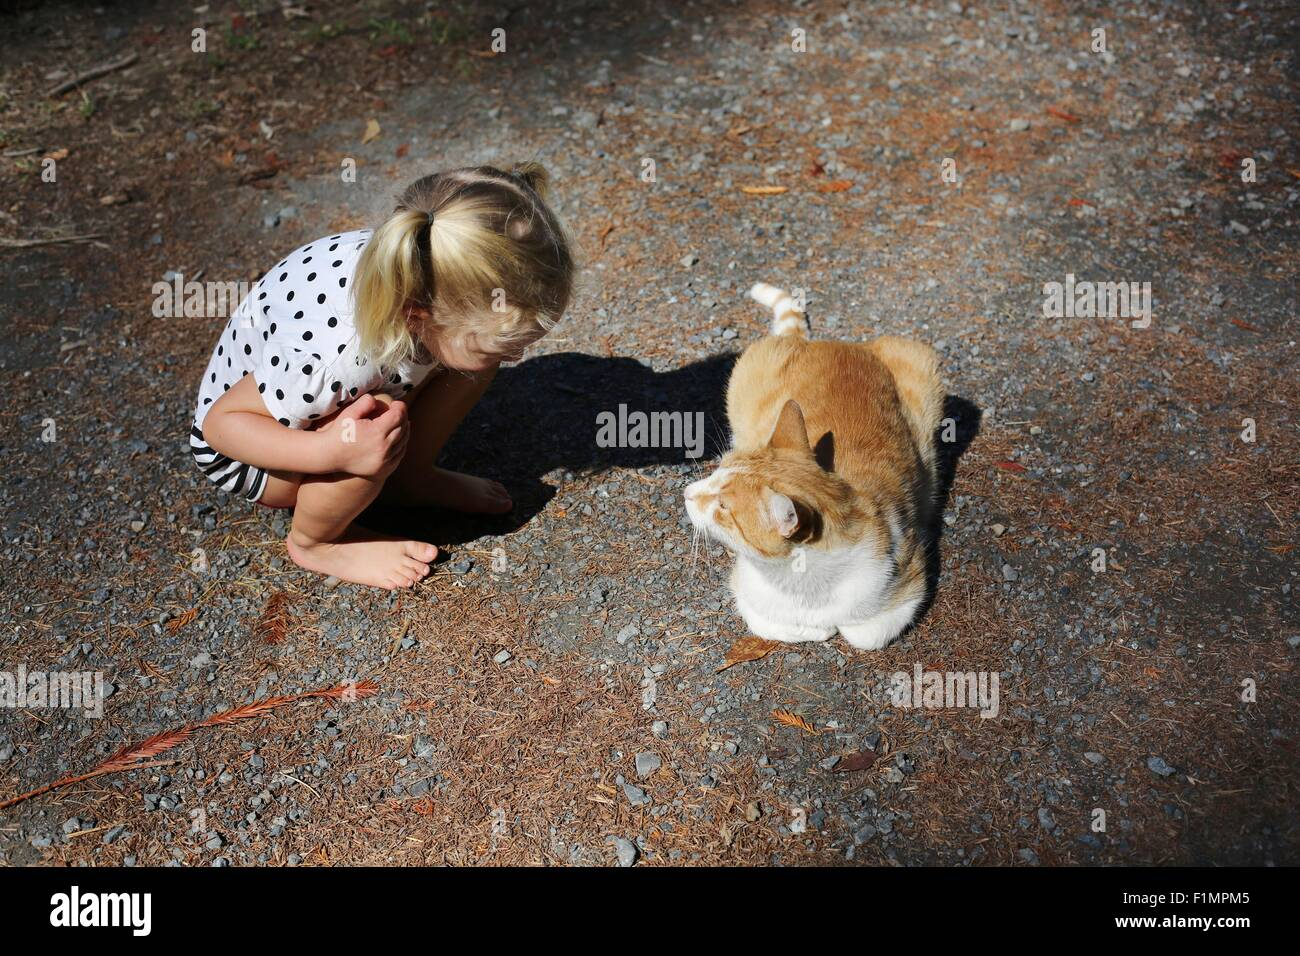 A little girl crouched next to a cat. - Stock Image